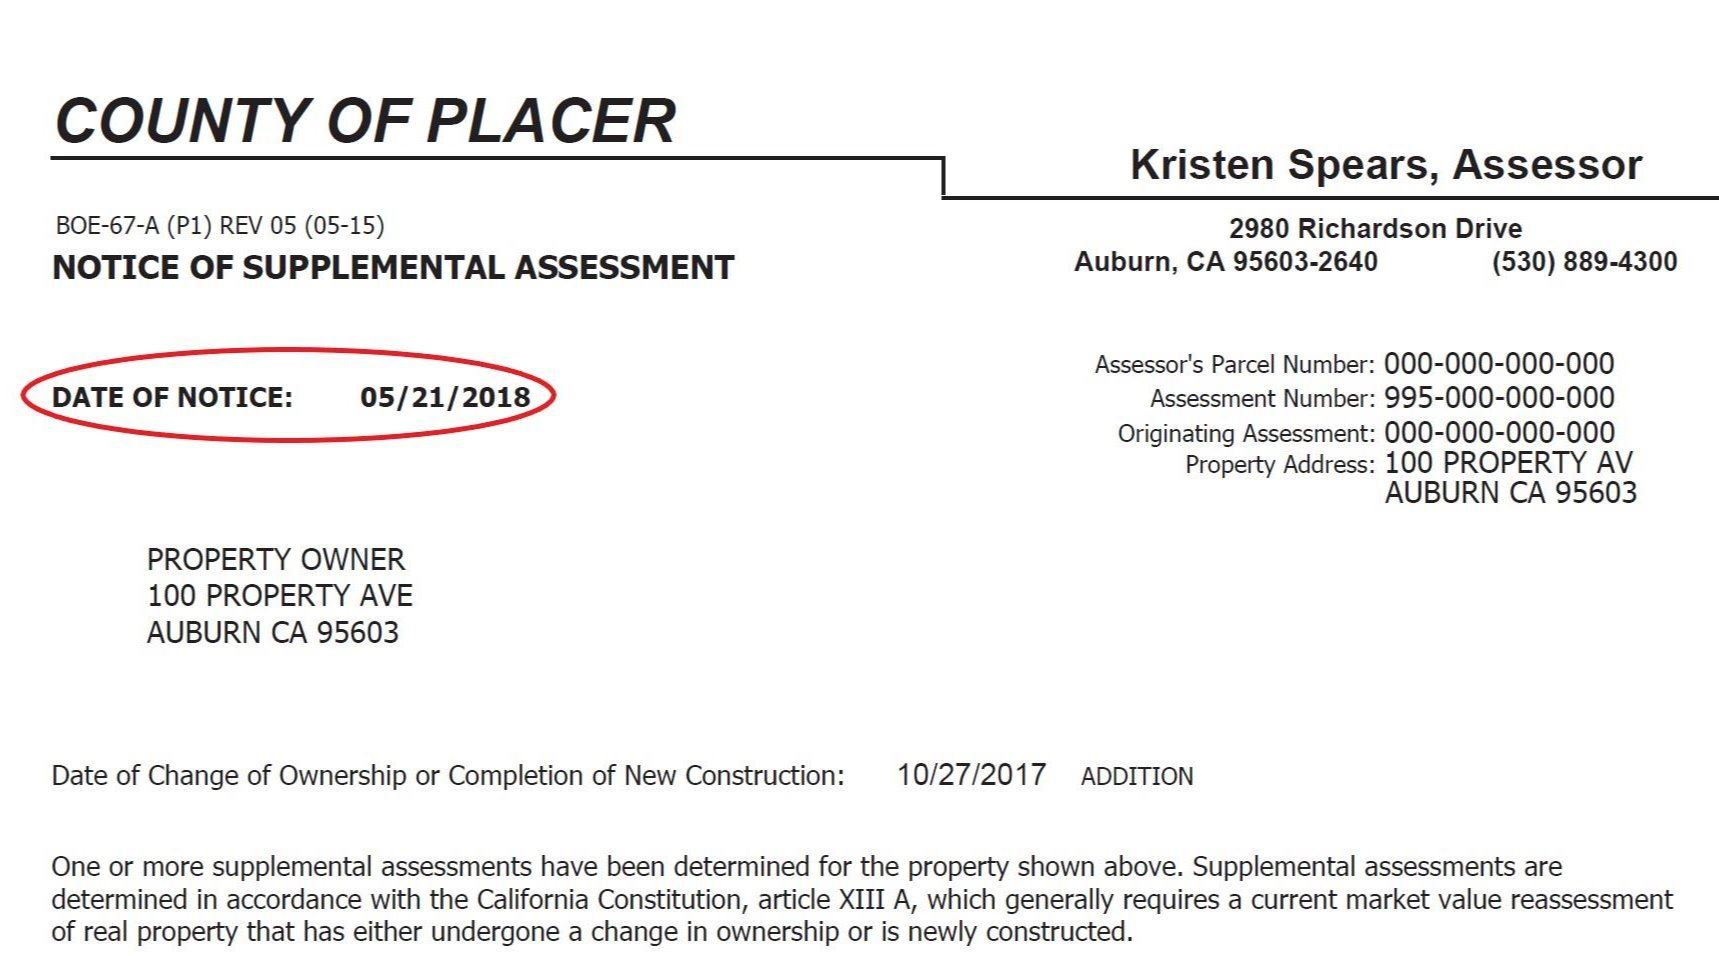 Notice of Supplemental Assessment